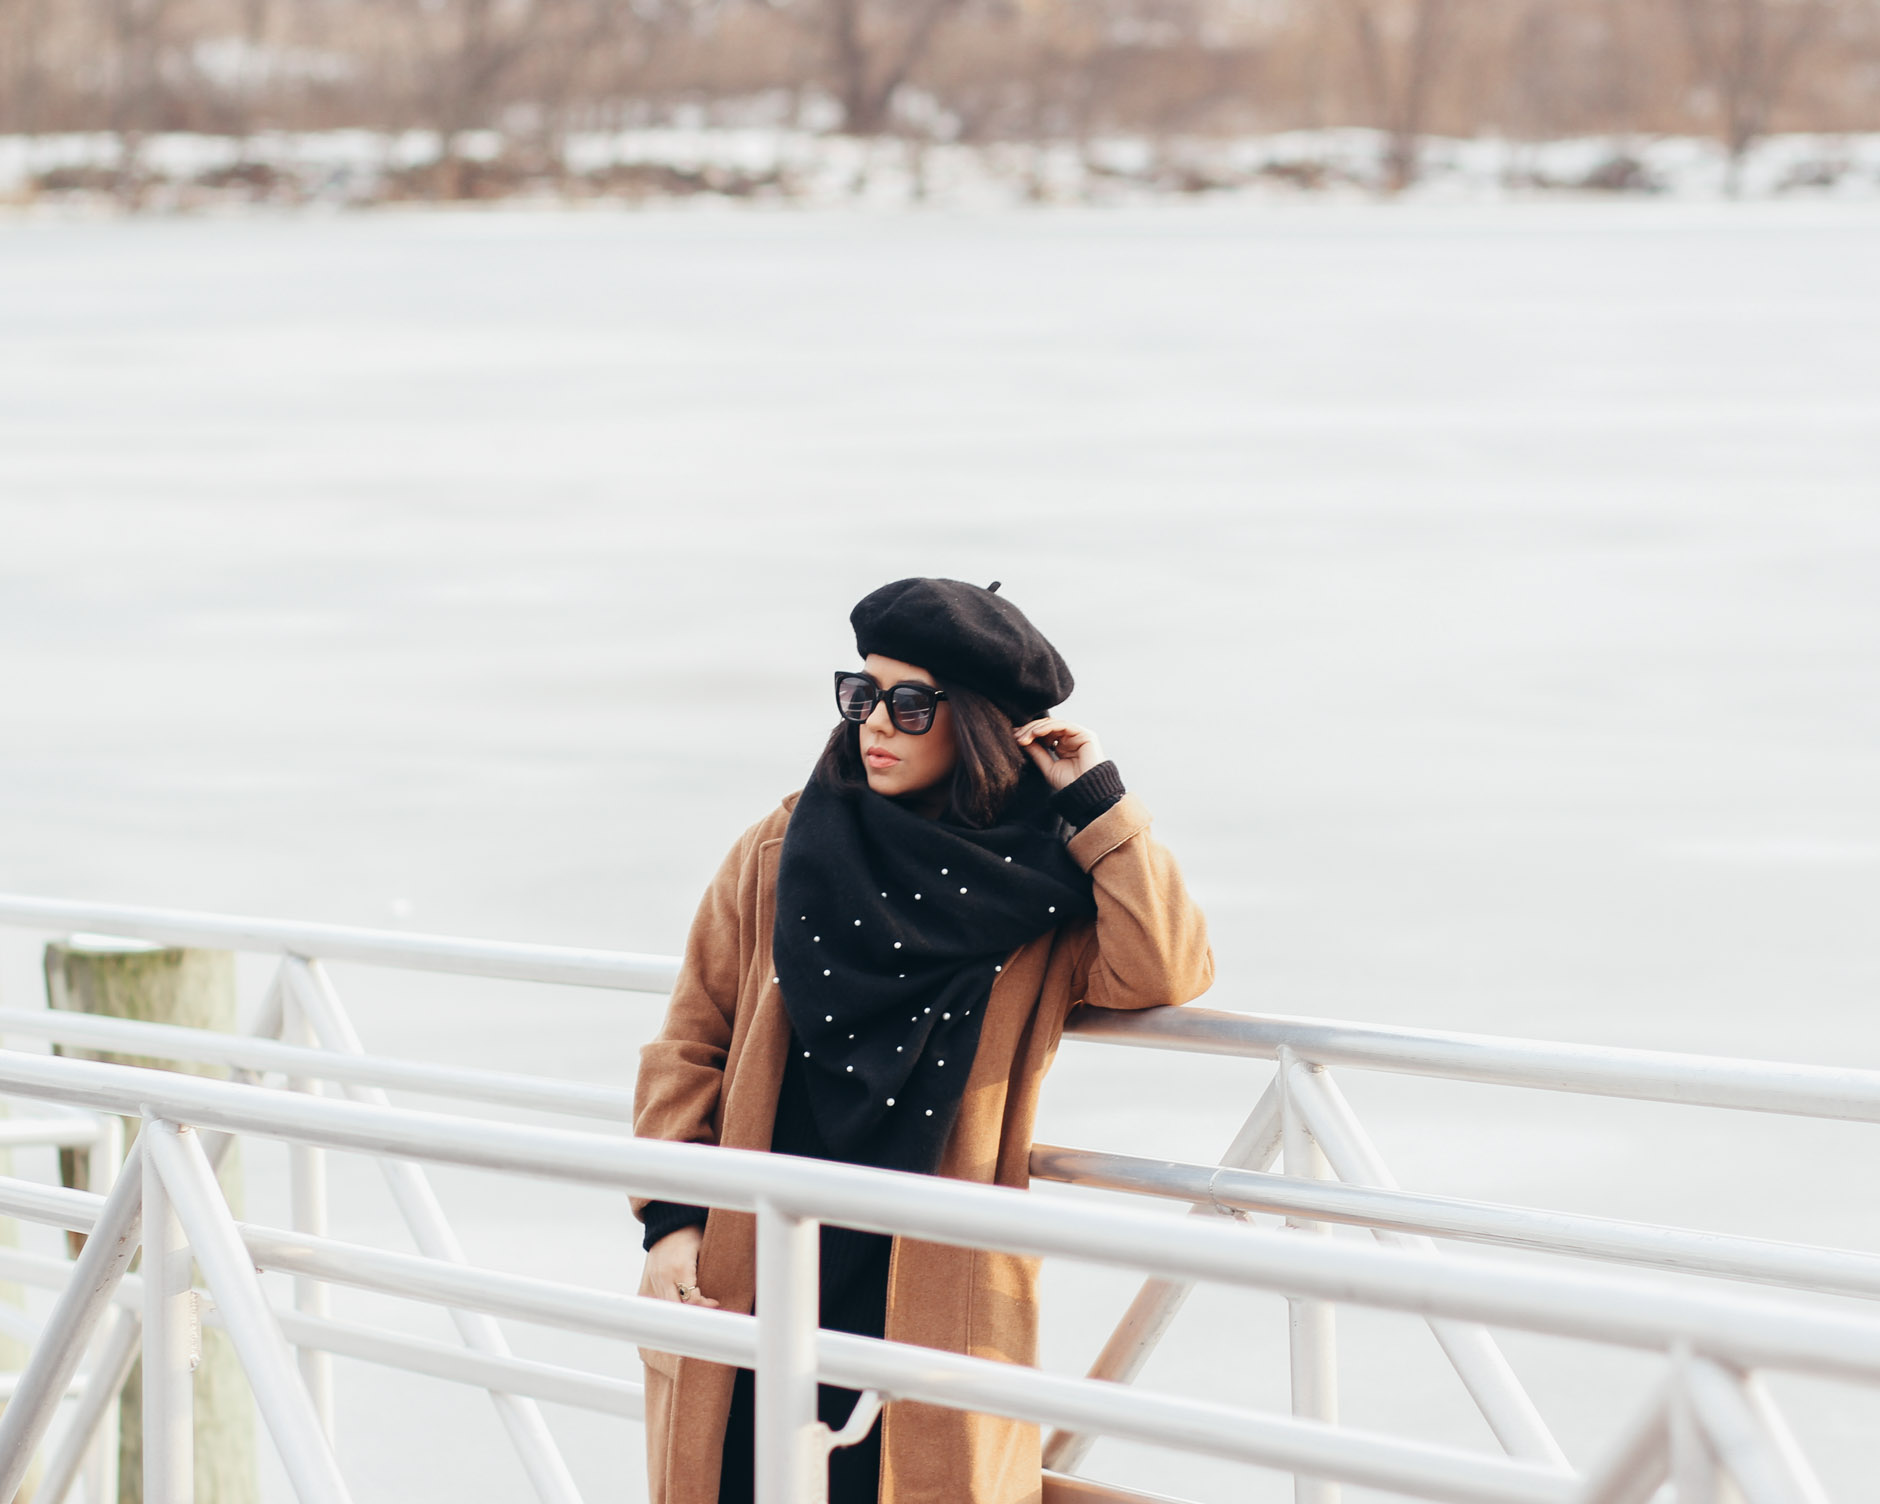 naty michele wearing a beret and peal scarf